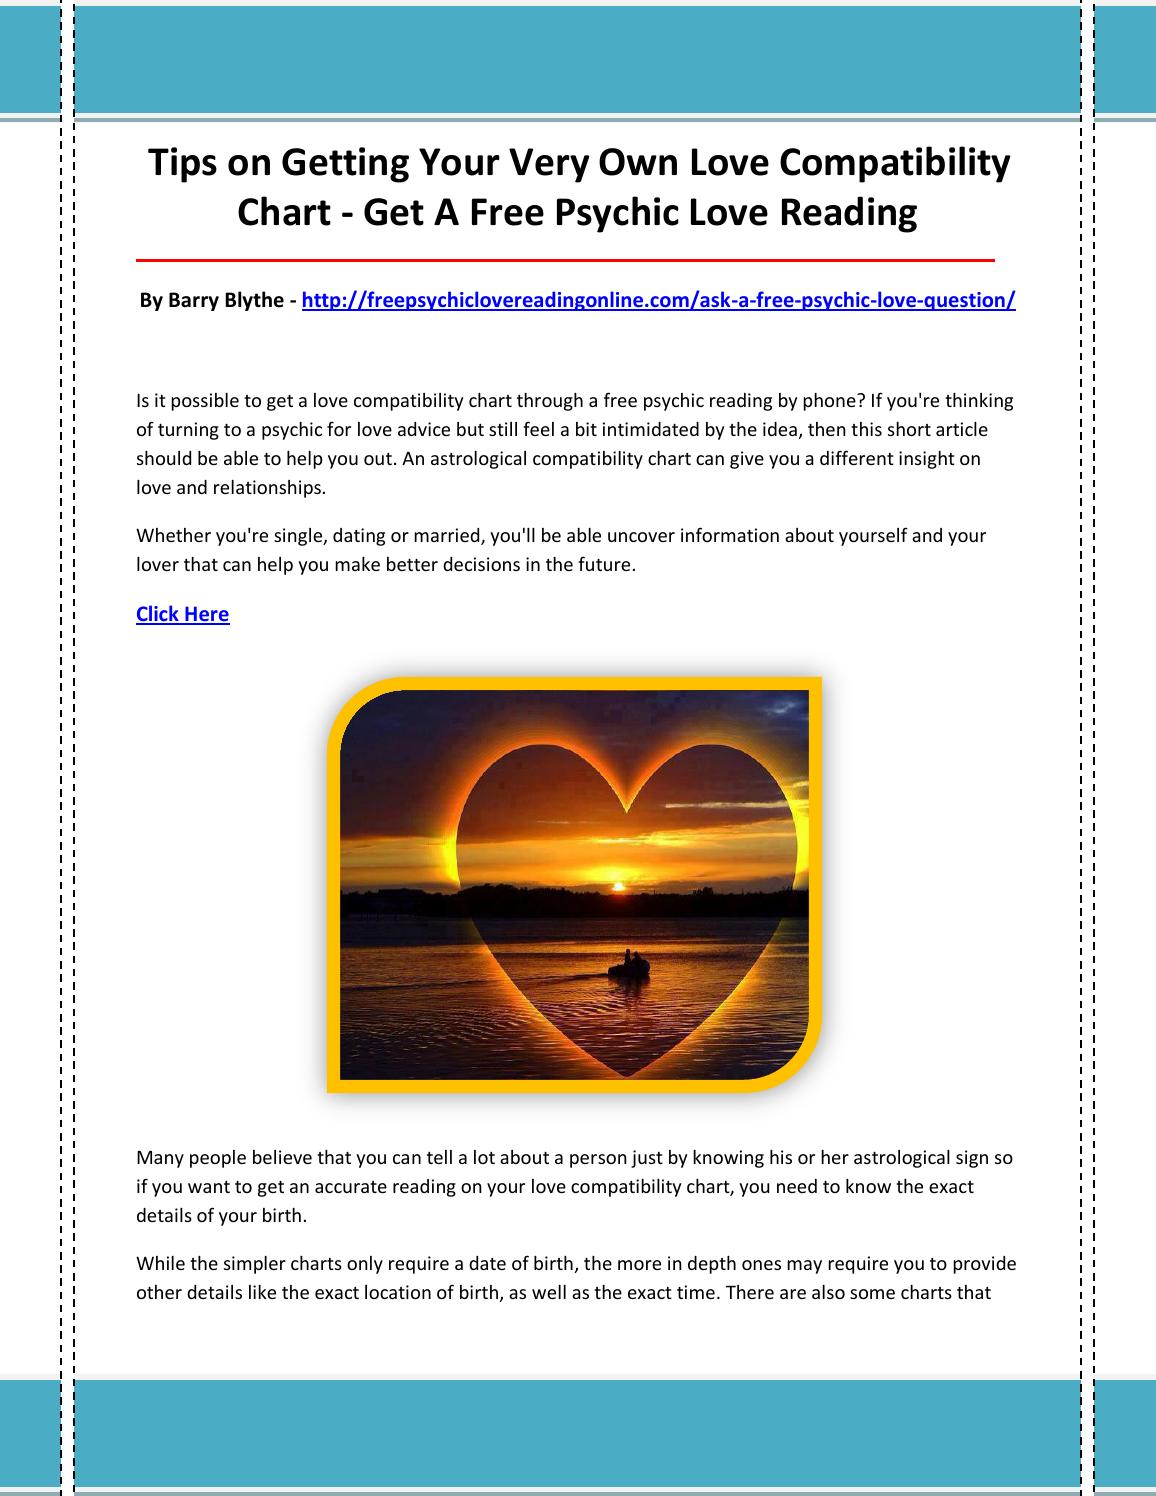 Get a free psychic love reading by getafreepsychiclovereading issuu nvjuhfo Gallery